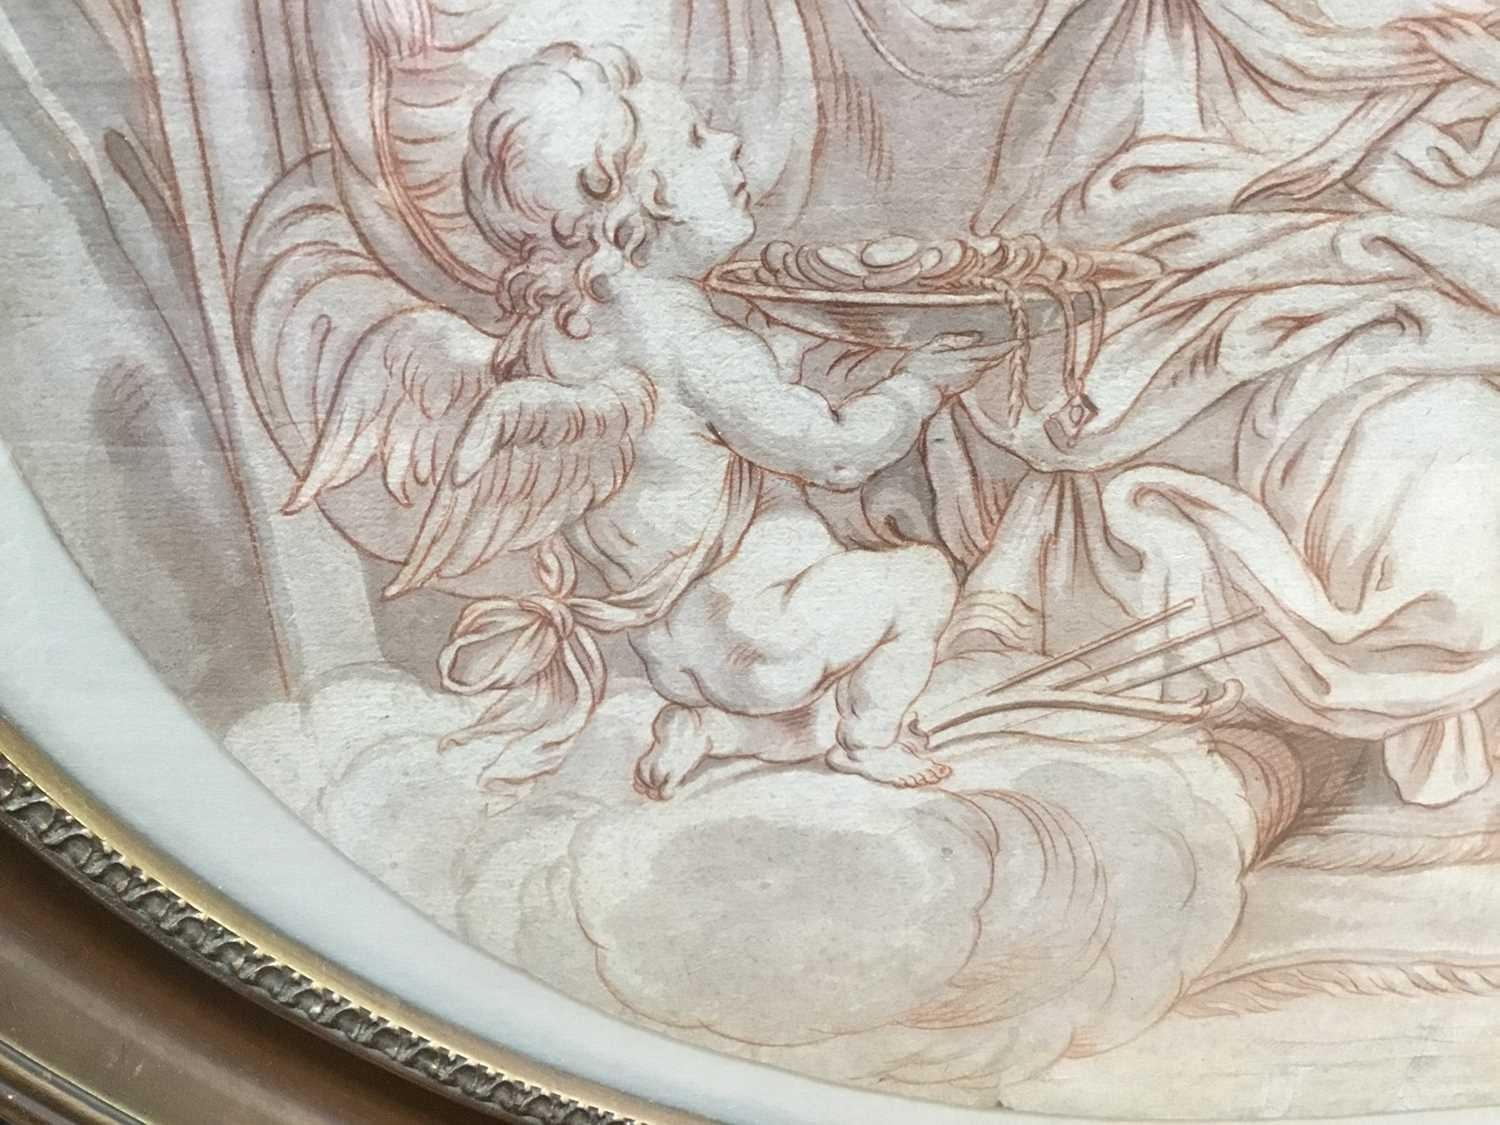 AN 18TH CENTURY ITALIAN SCHOOL PENCIL, PEN AND INK WITH WHITE BODY COLOUR ON OVAL OFF WHITE HANDMADE - Image 4 of 4